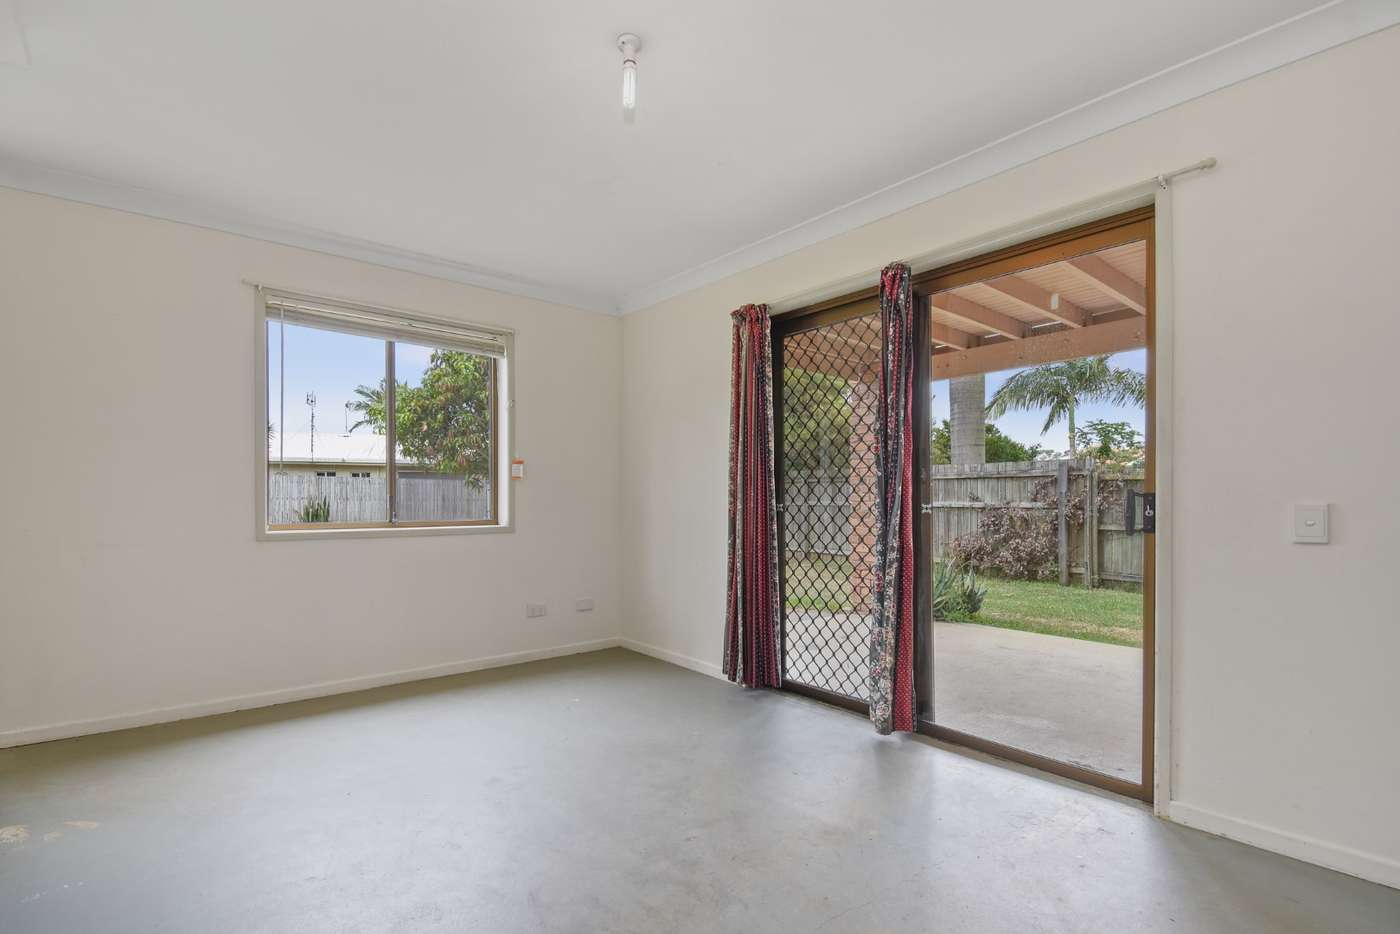 Seventh view of Homely house listing, 23 Currimundi Road, Currimundi QLD 4551